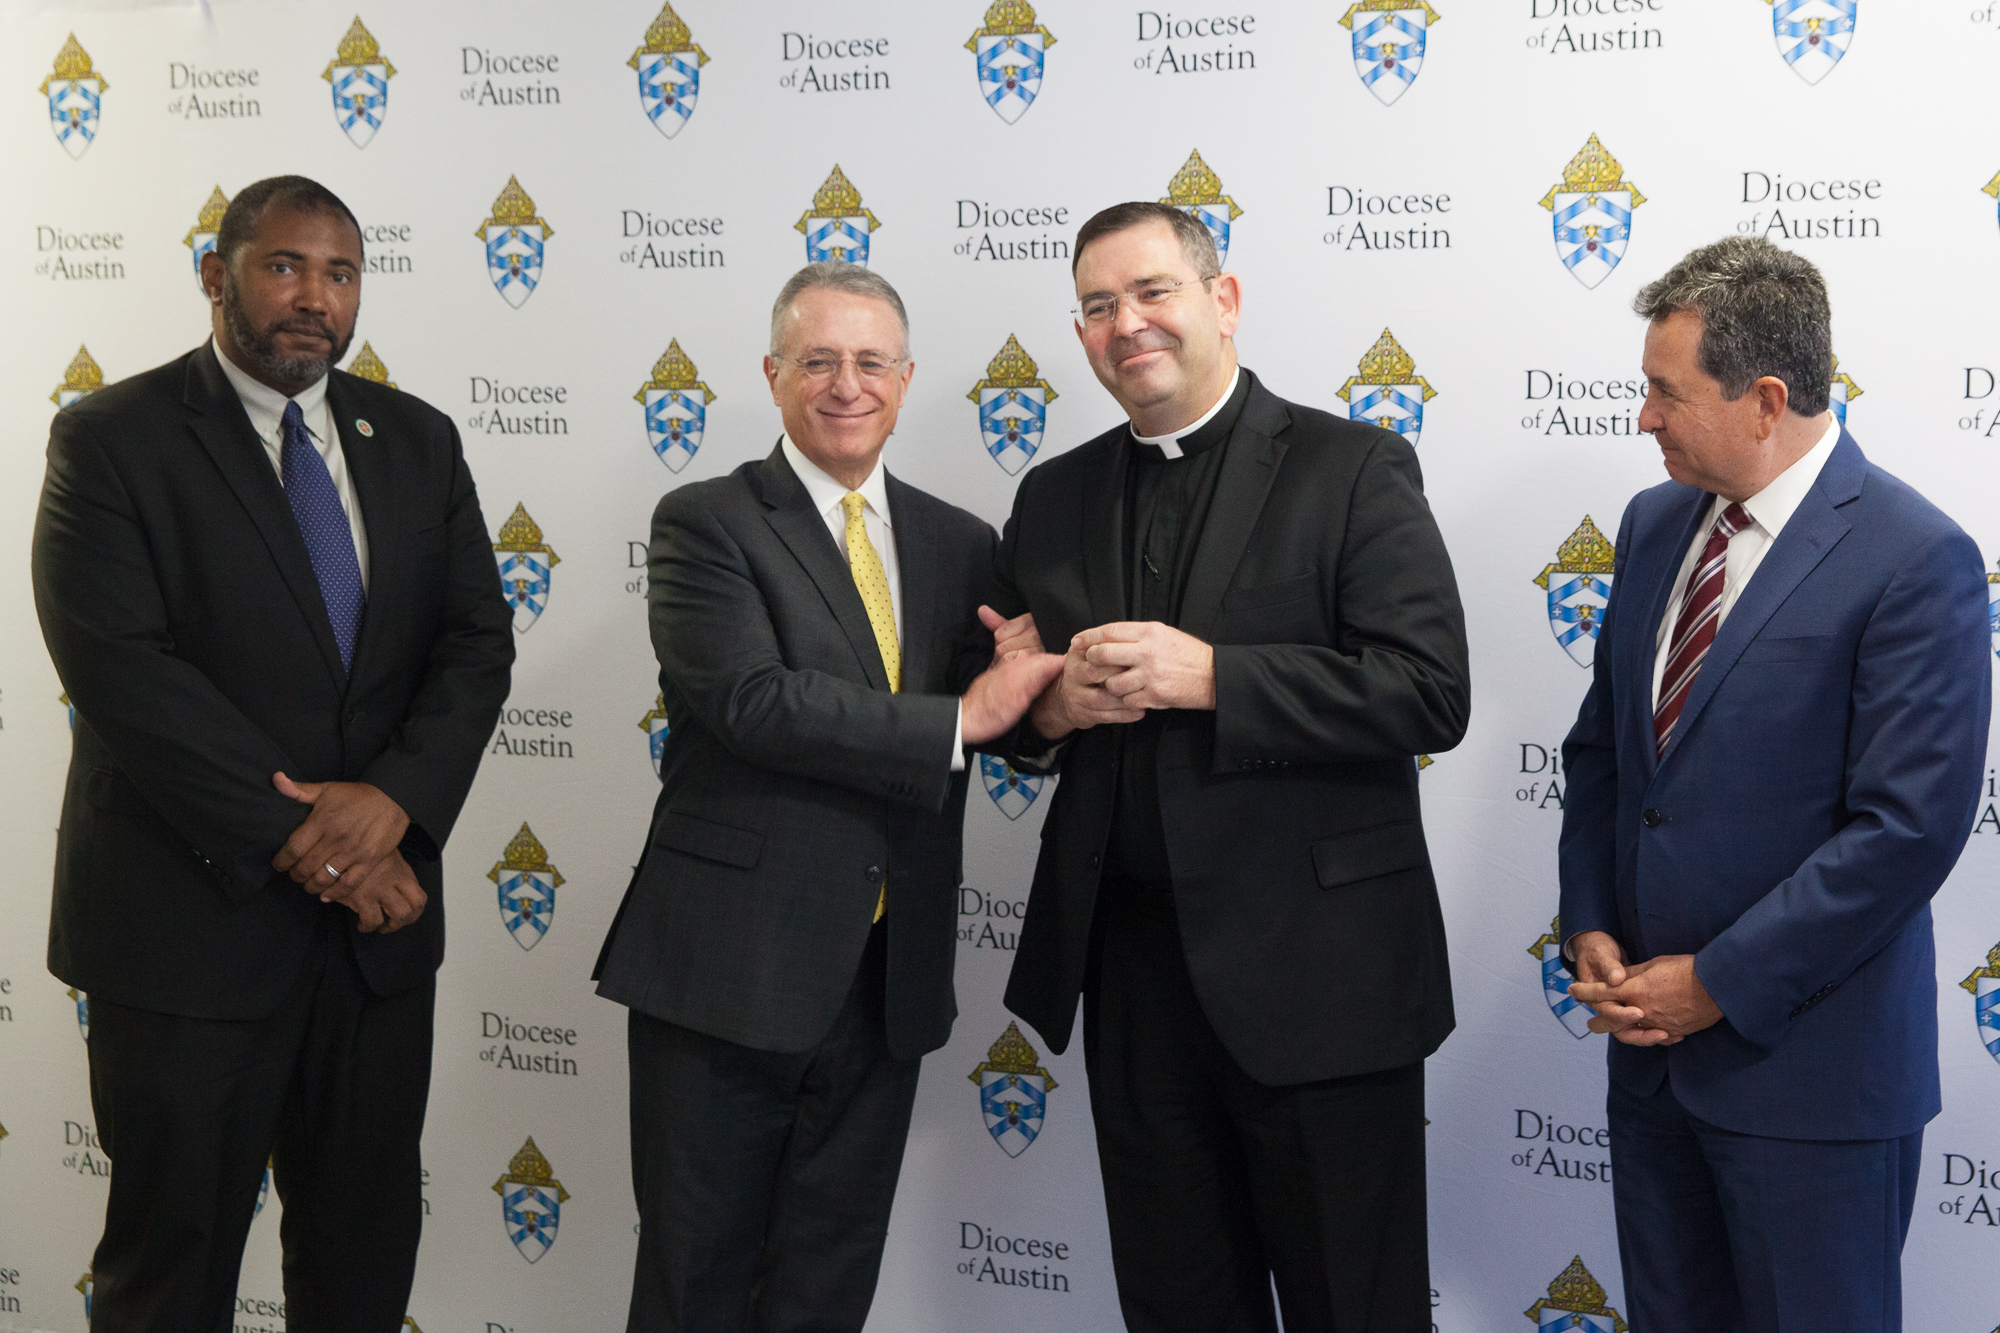 From left to right: Father DeKarlos Blackmon, secretariat director of the Diocese of Austin; Elder Ulisses Soares; Father James Misko, vicar general of the Diocese of Austin; and Elder Adrian Ochoa at the Diocese of Austin on Oct. 18, 2019.